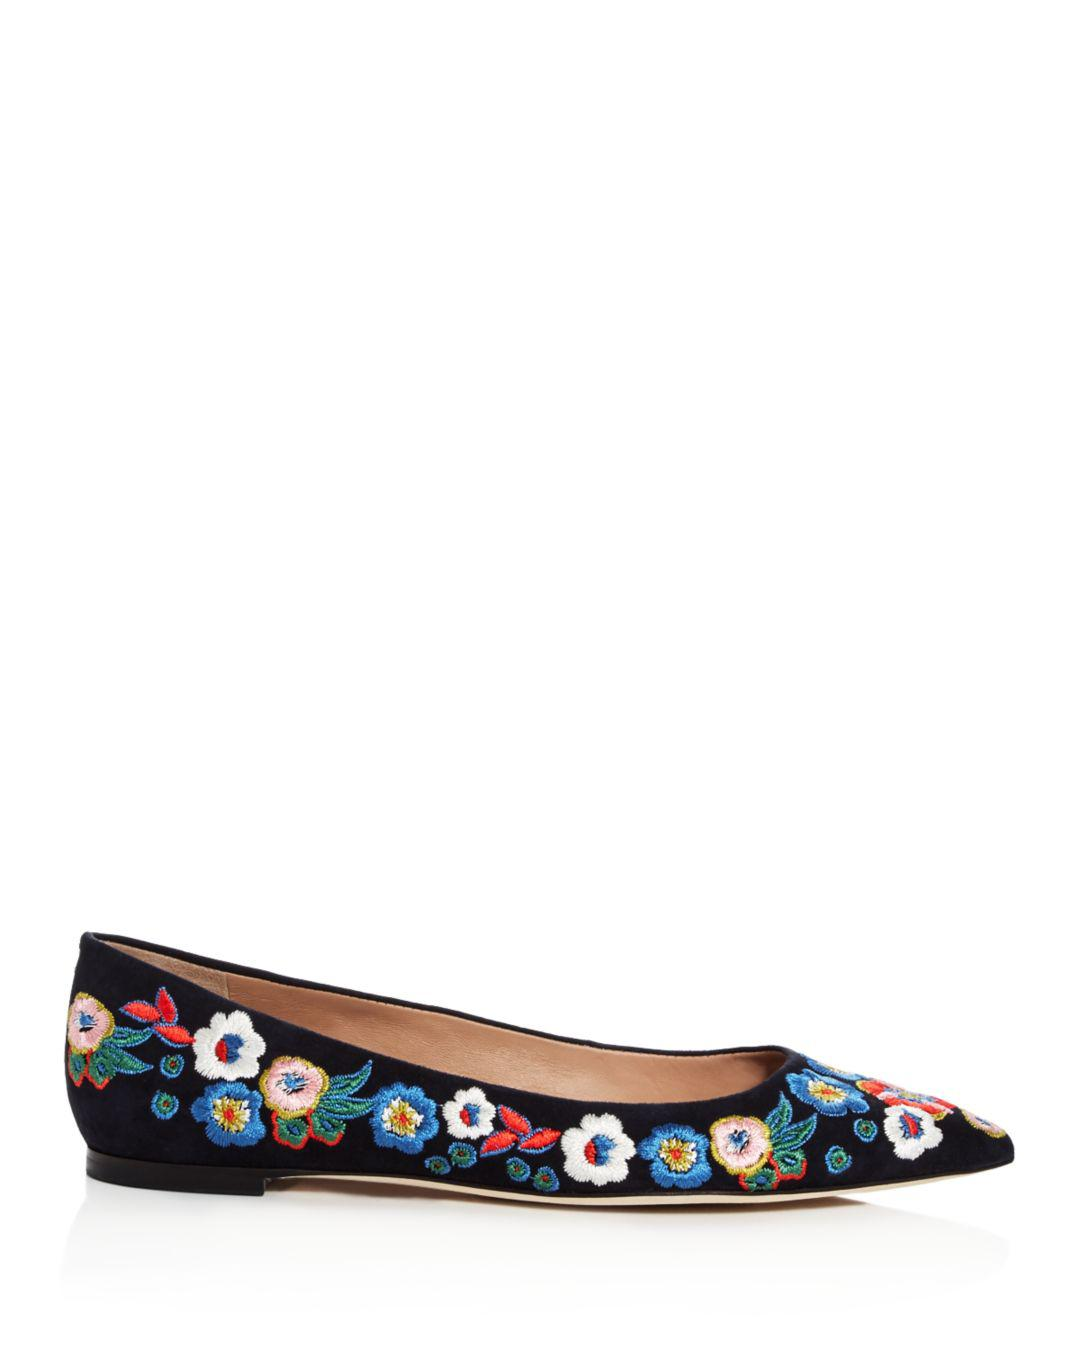 3b61f90efce66a Lyst - Tory Burch Women s Rosemont Embroidered Suede Pointed Toe ...